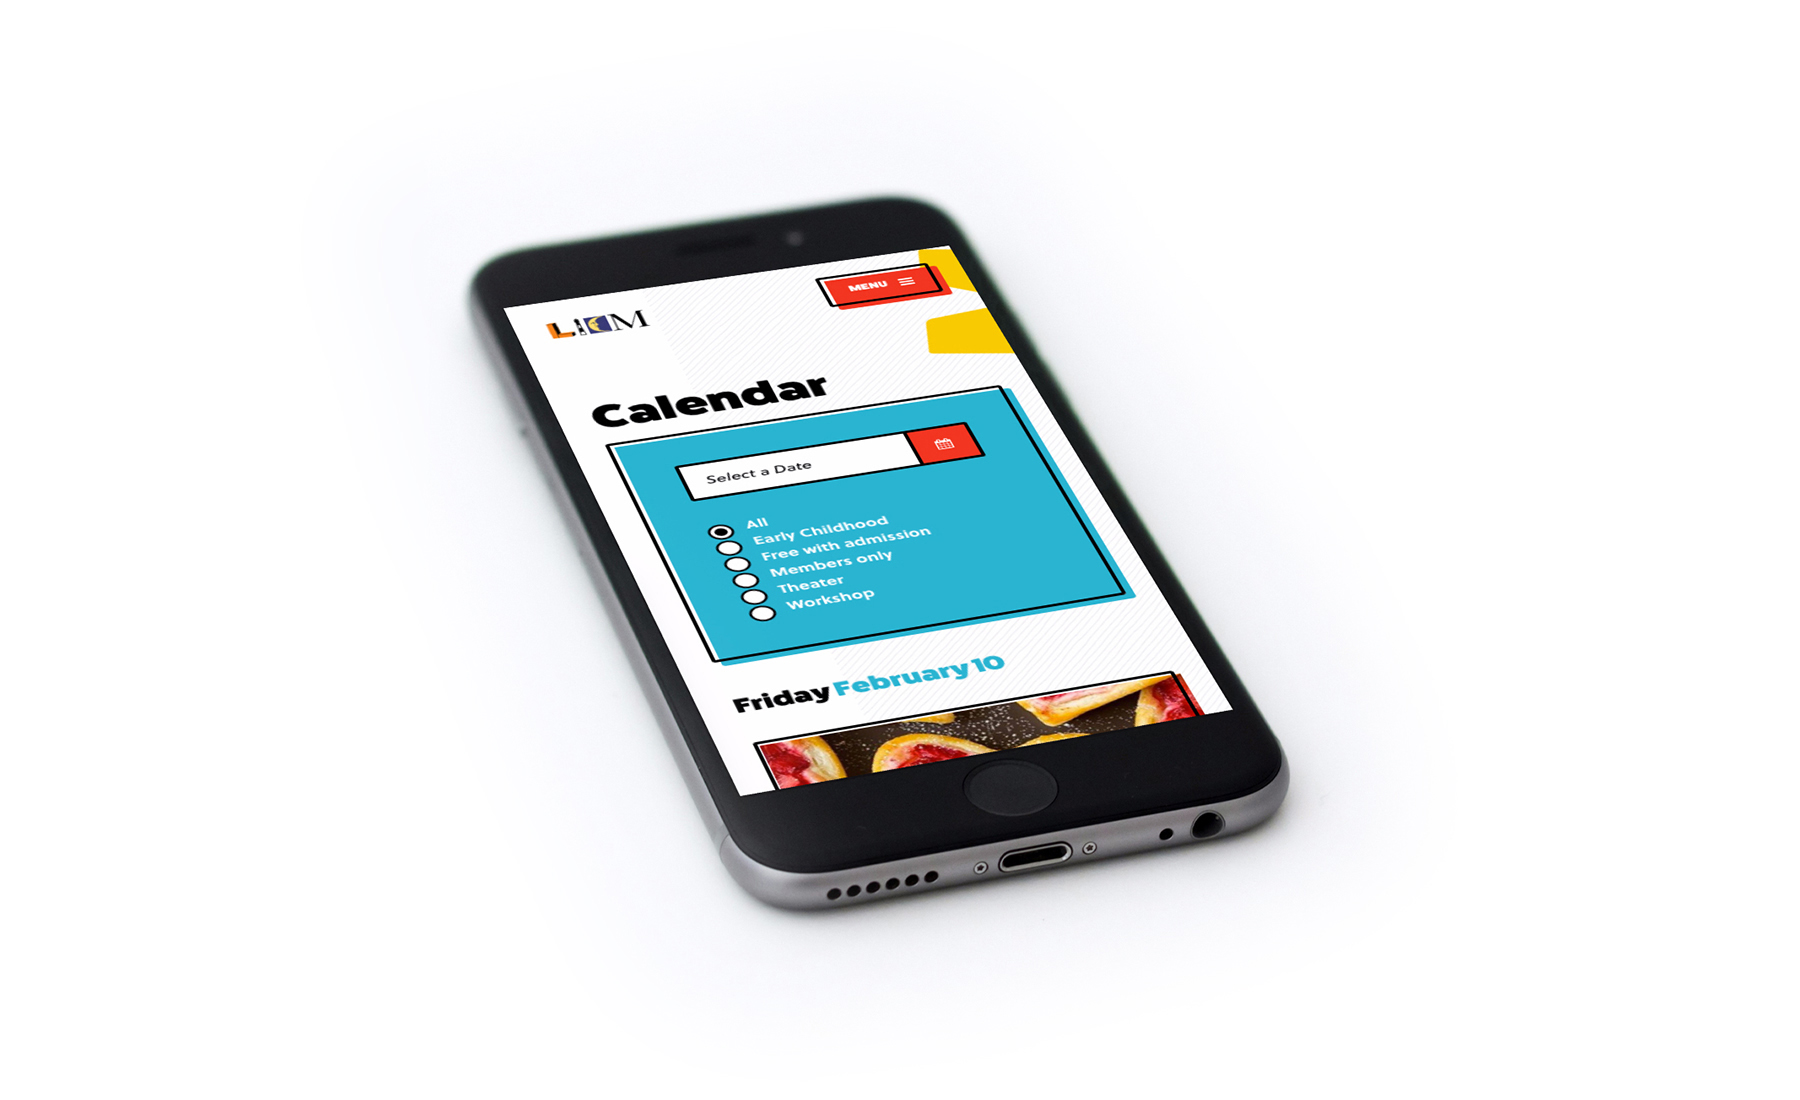 LICM calendar on iphone